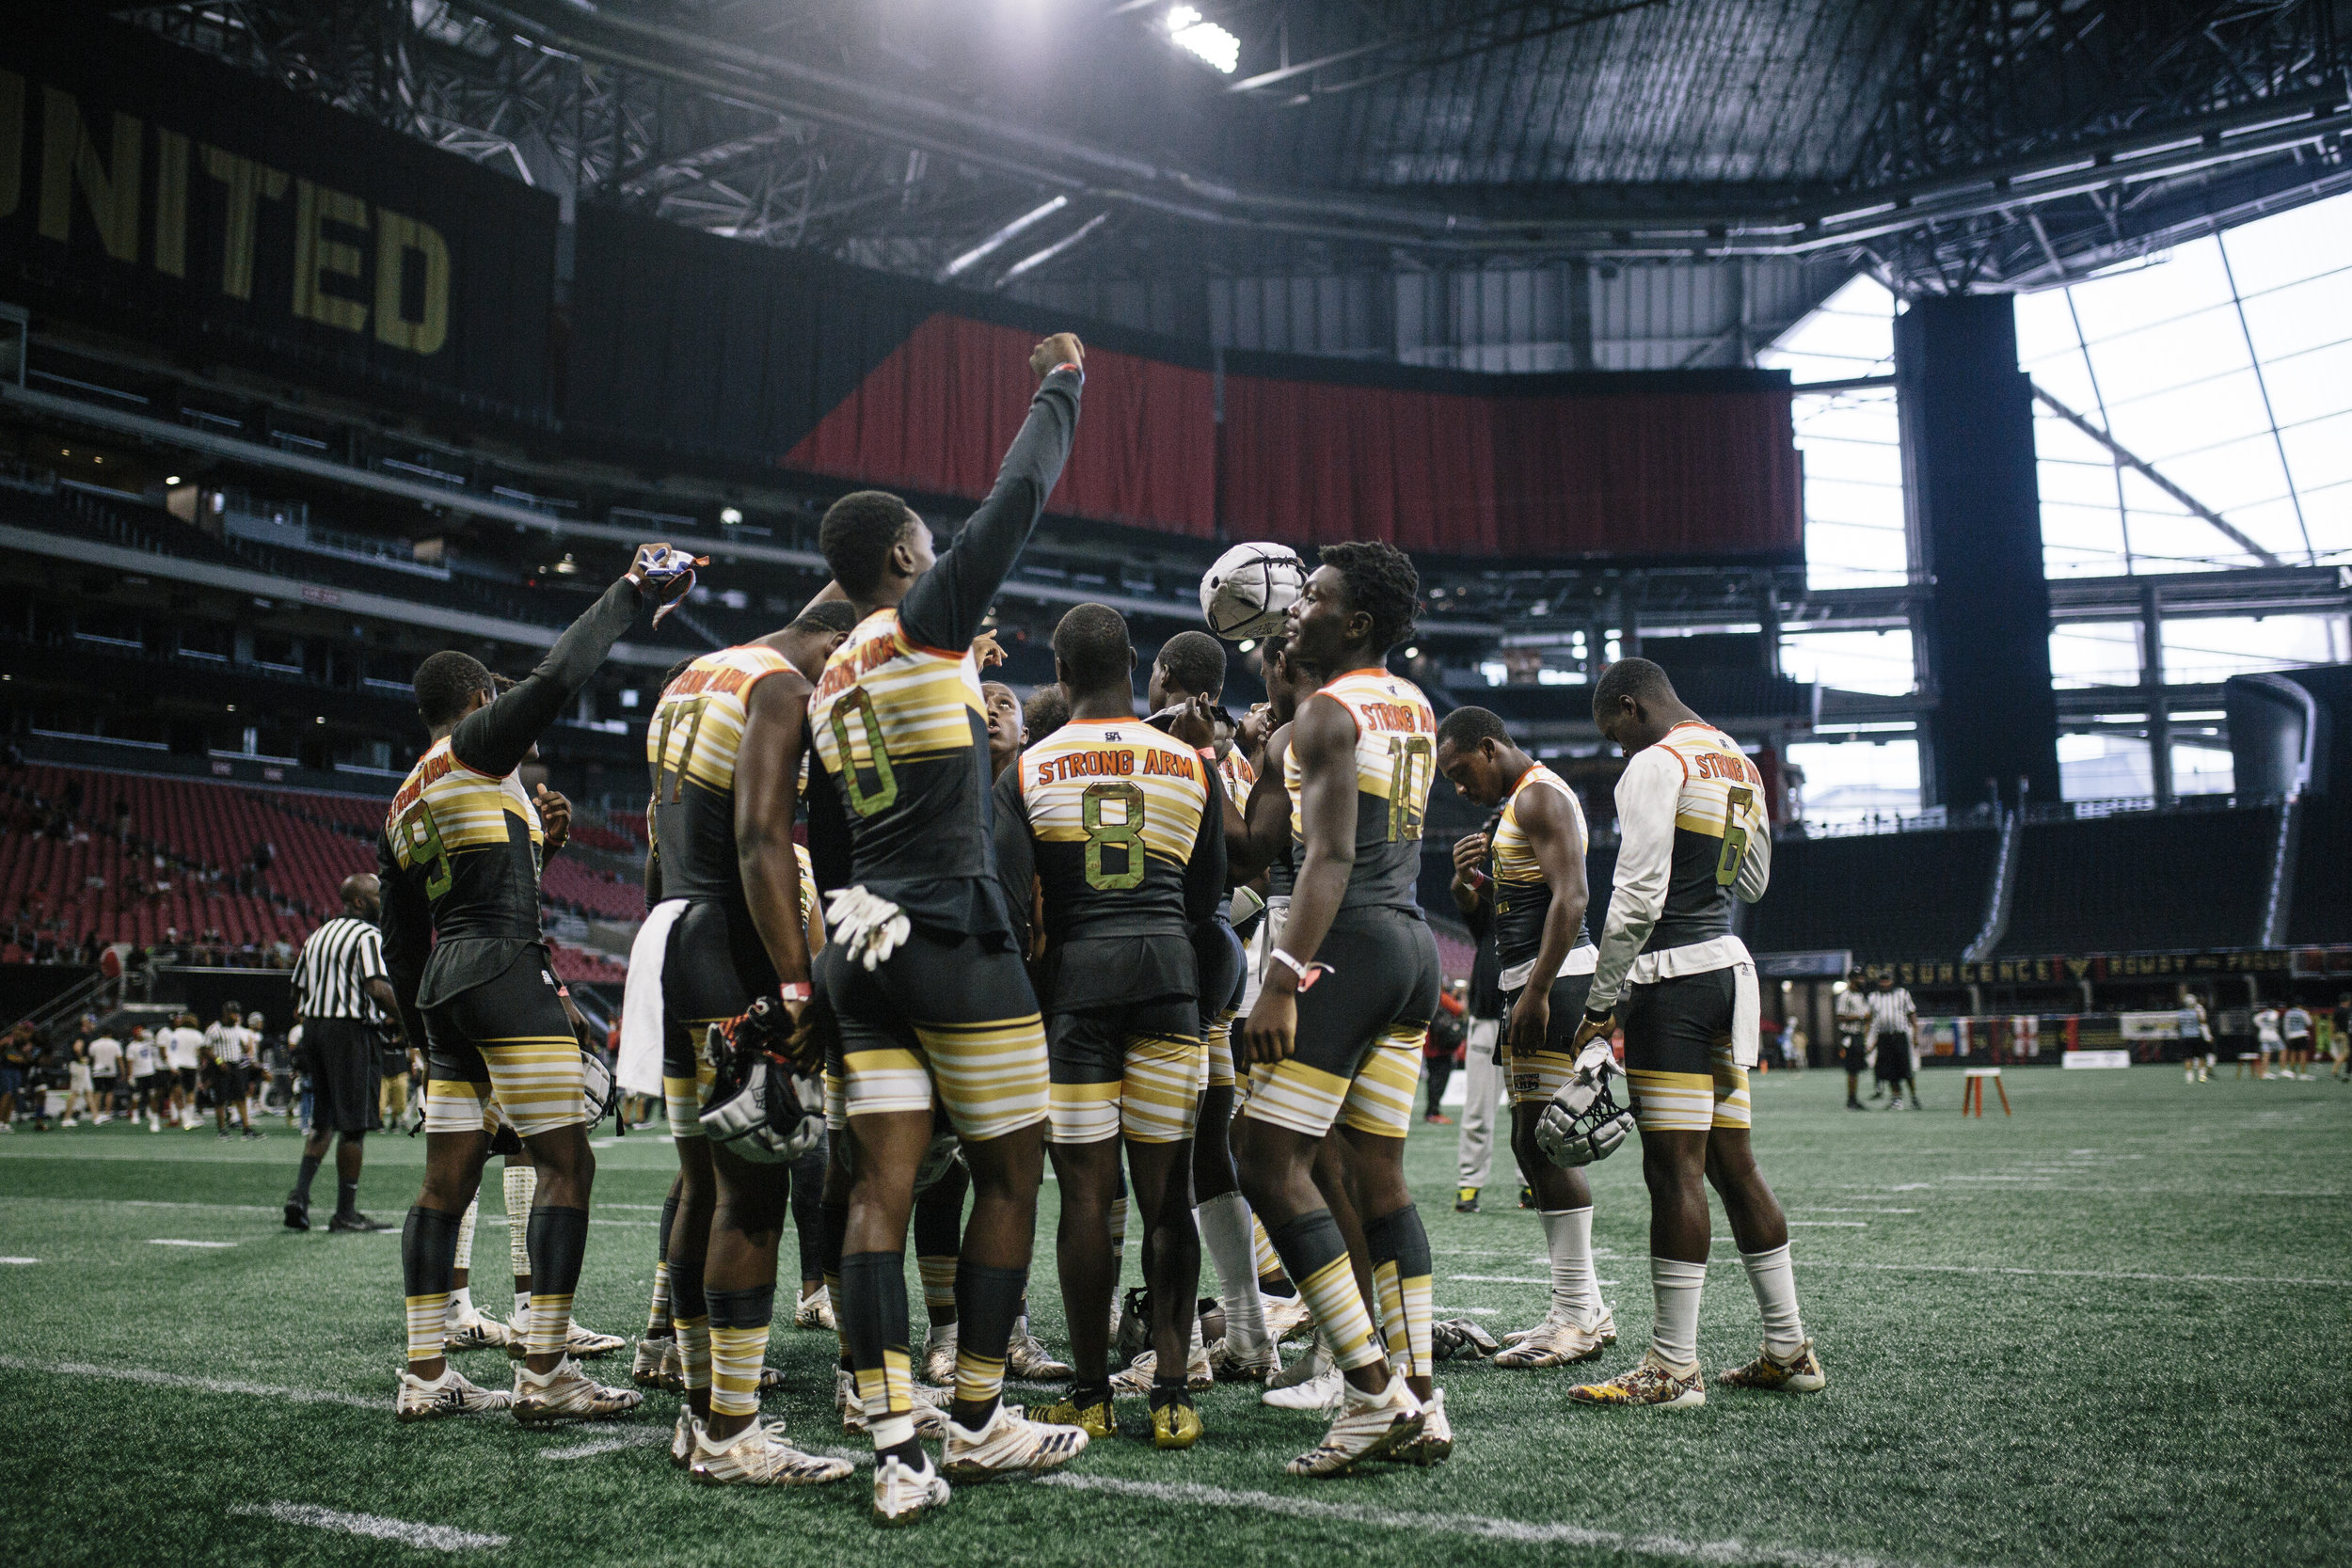 Pylon 7v7 National Championship - shot for NFL